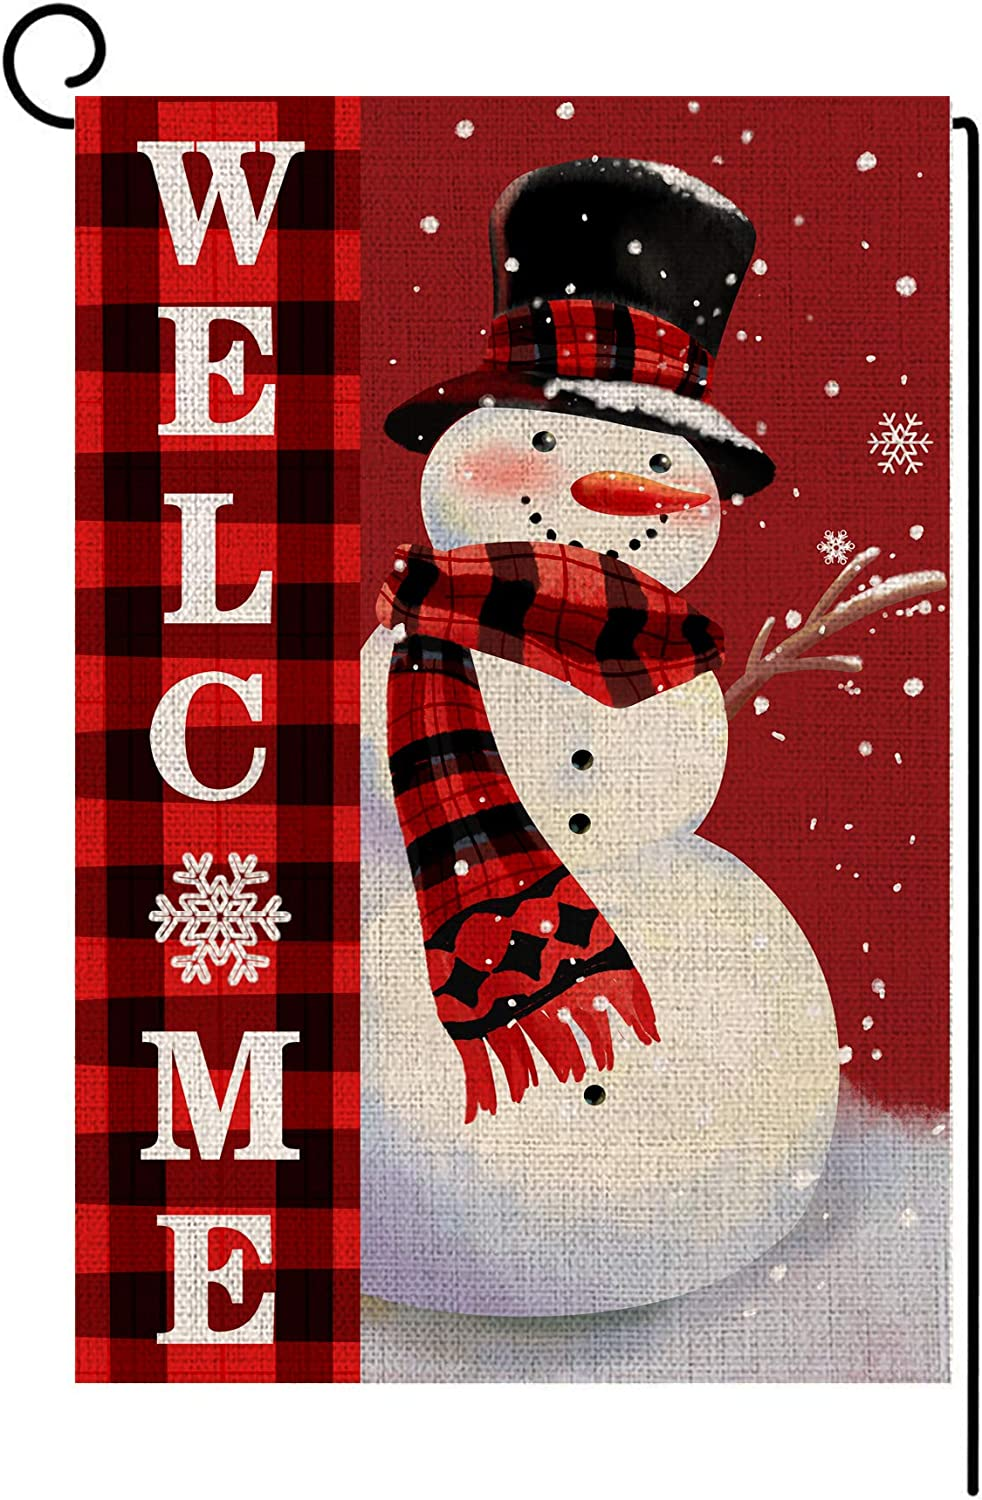 LANMEI Welcome Christmas Garden Flag Double Sided Snowman with Buffalo Plaid Scarf Garden Flag, Winter Christmas Rustic Yard Outdoor Decoration 12.5 x 18 Inch